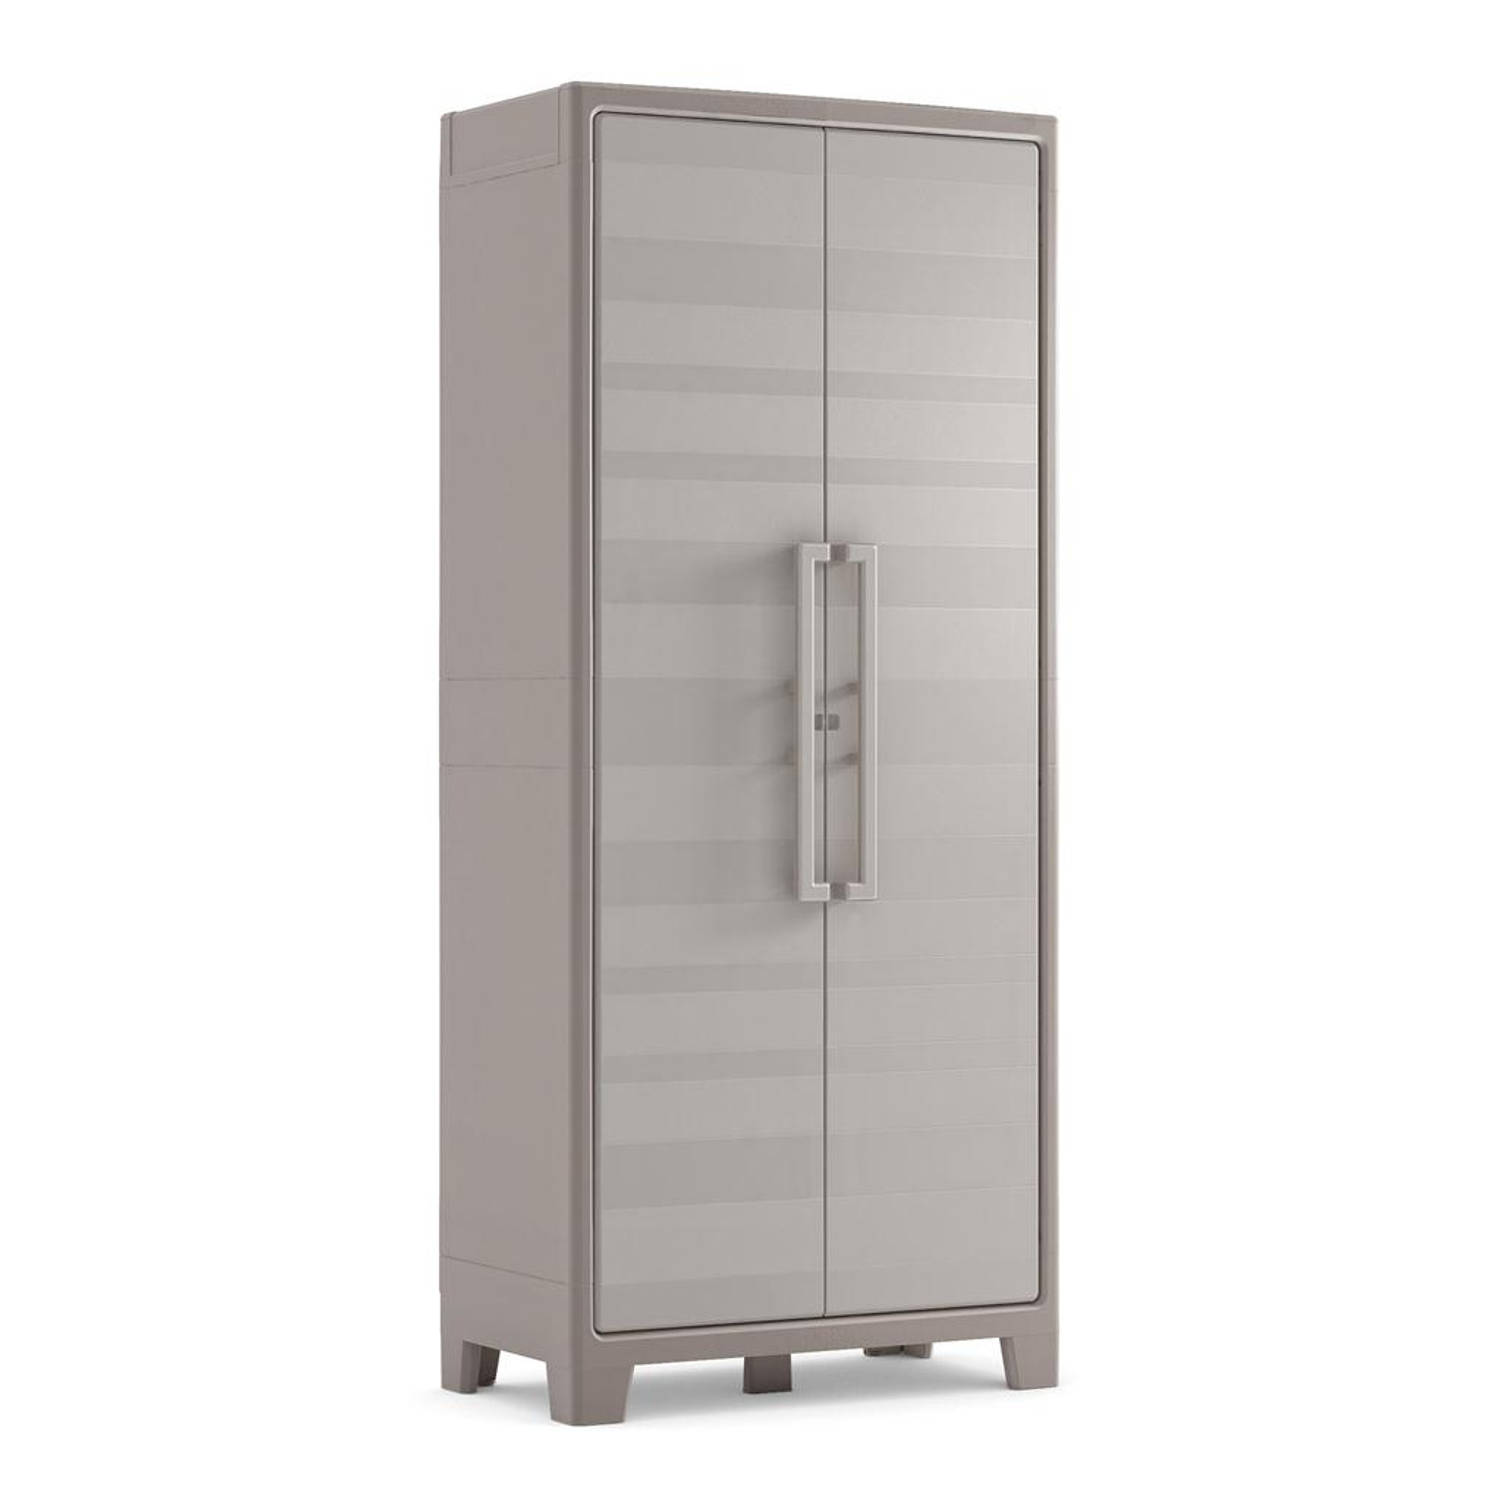 KIS Gulliver Low Cabinet